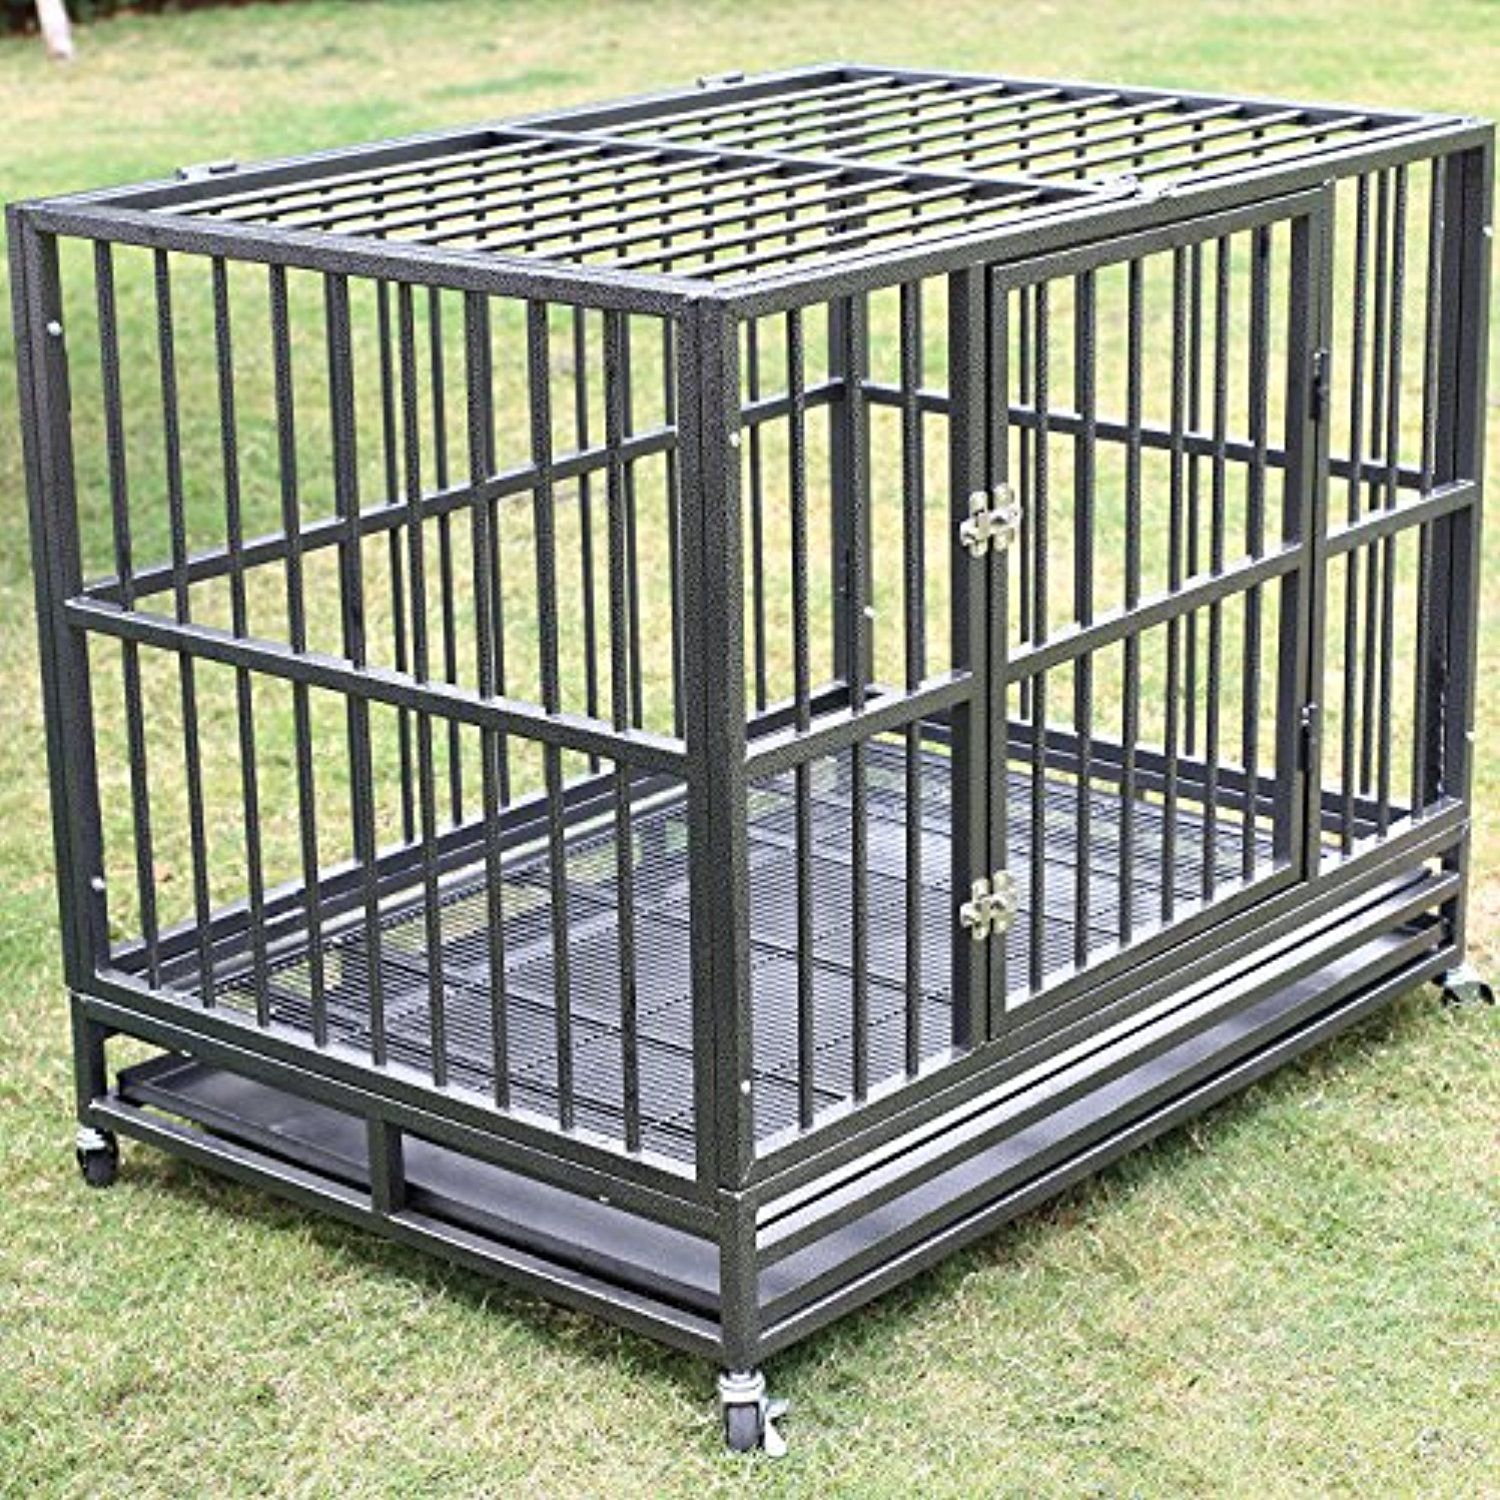 New 42 Dog Crate Kennel Heavy Duty Pet Cage Metal Playpen With Tray Pan Wheel Silver Click On The Image For Additiona Dog Cages Dog Crate Dog Cages For Sale